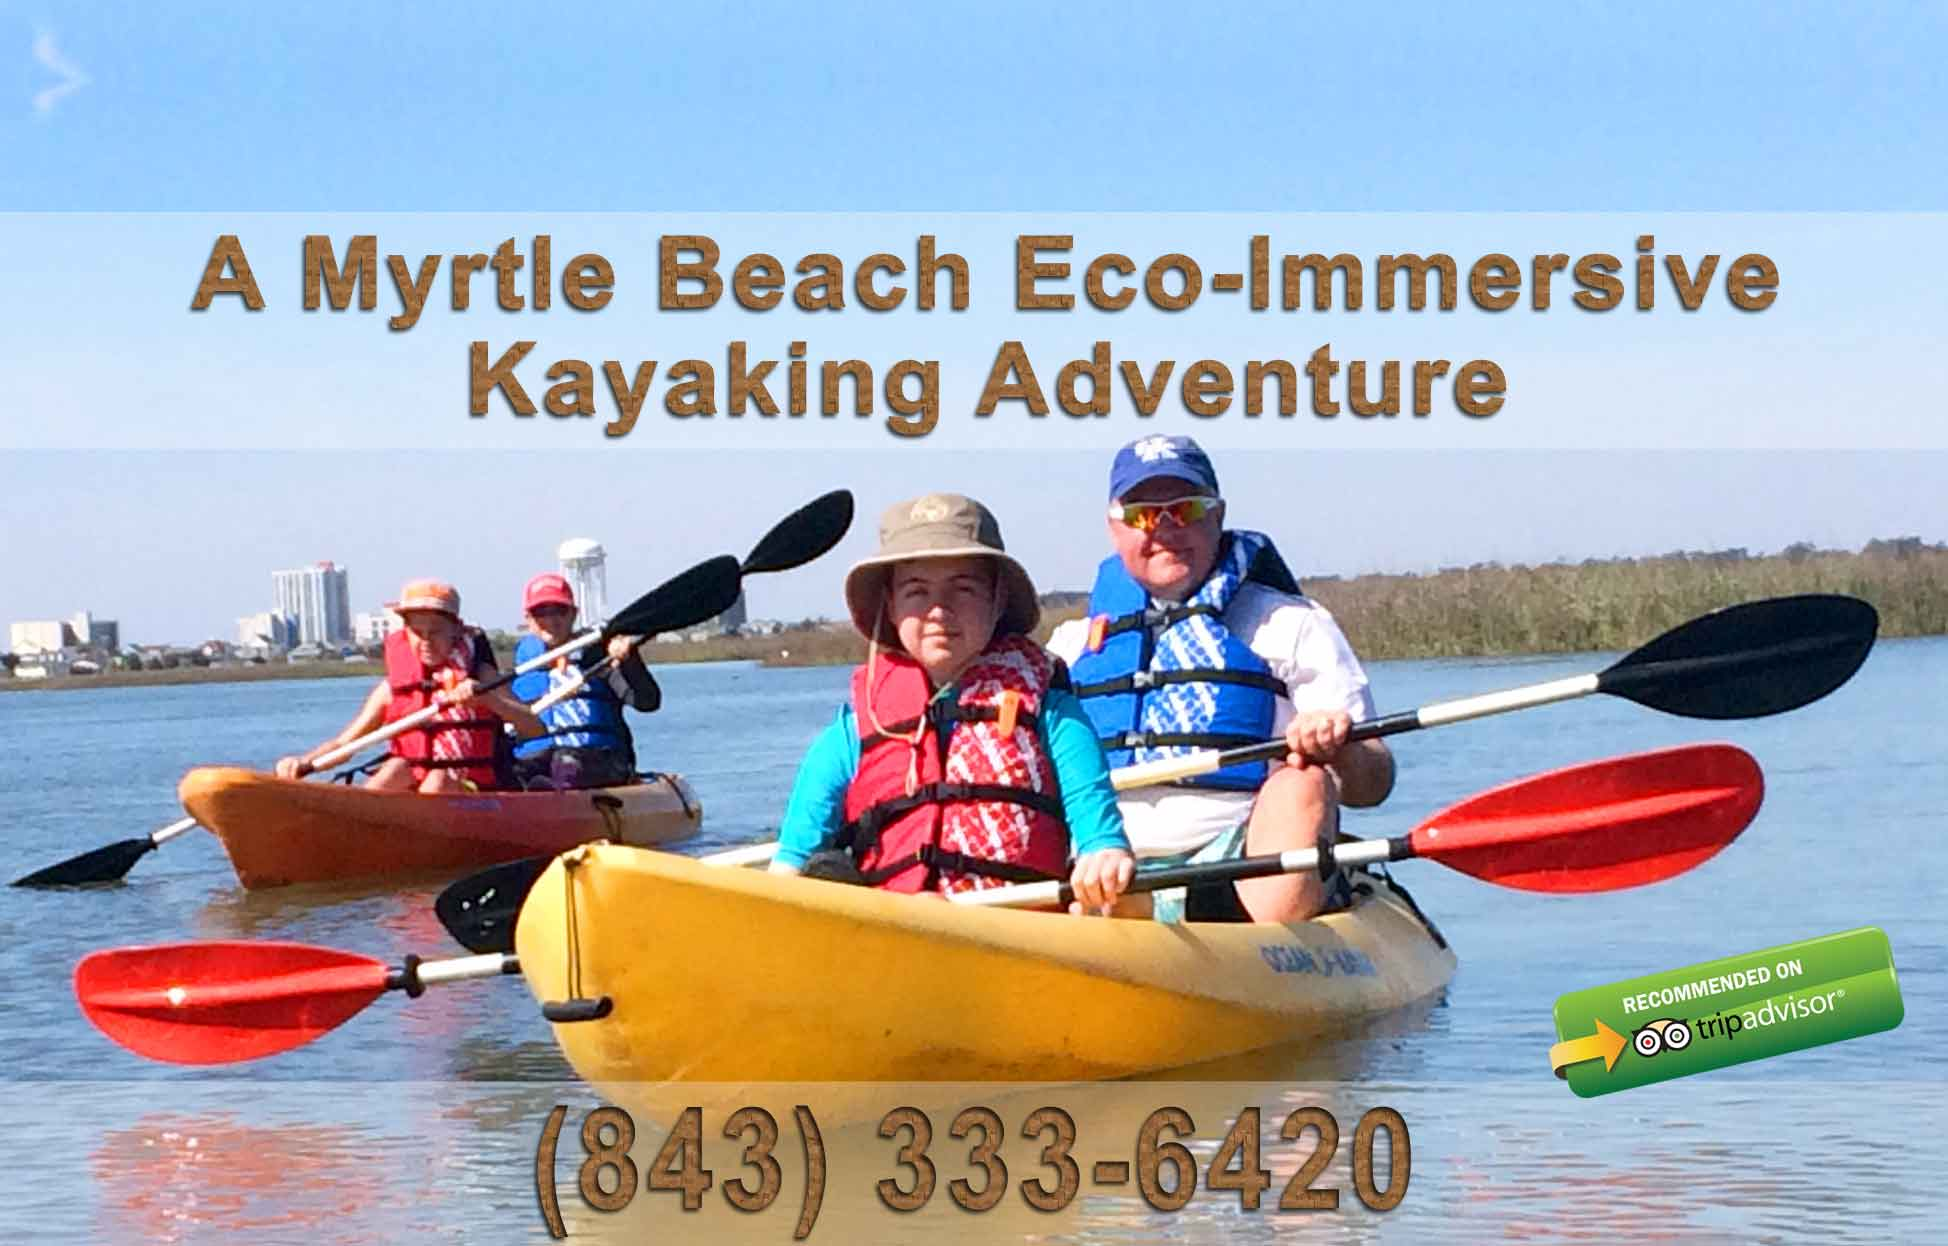 Kayaking in Myrtle Beach